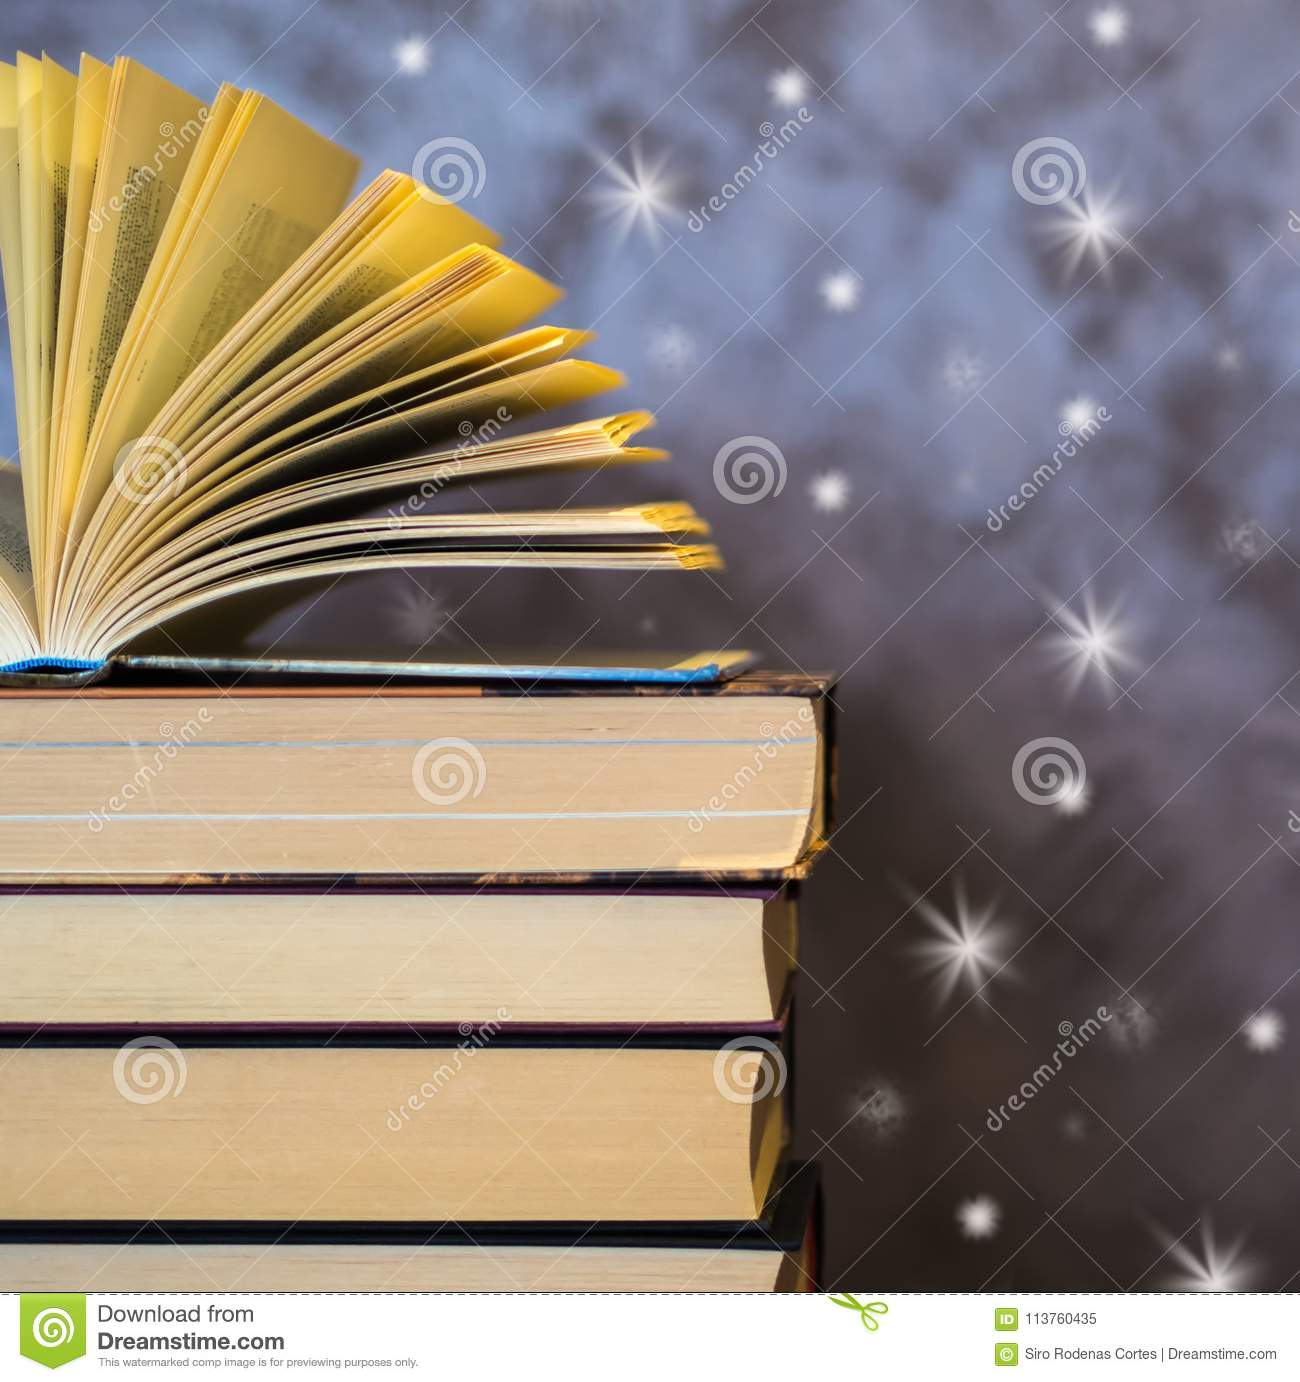 Open Book On Top Of Other Books Stock Image - Image of